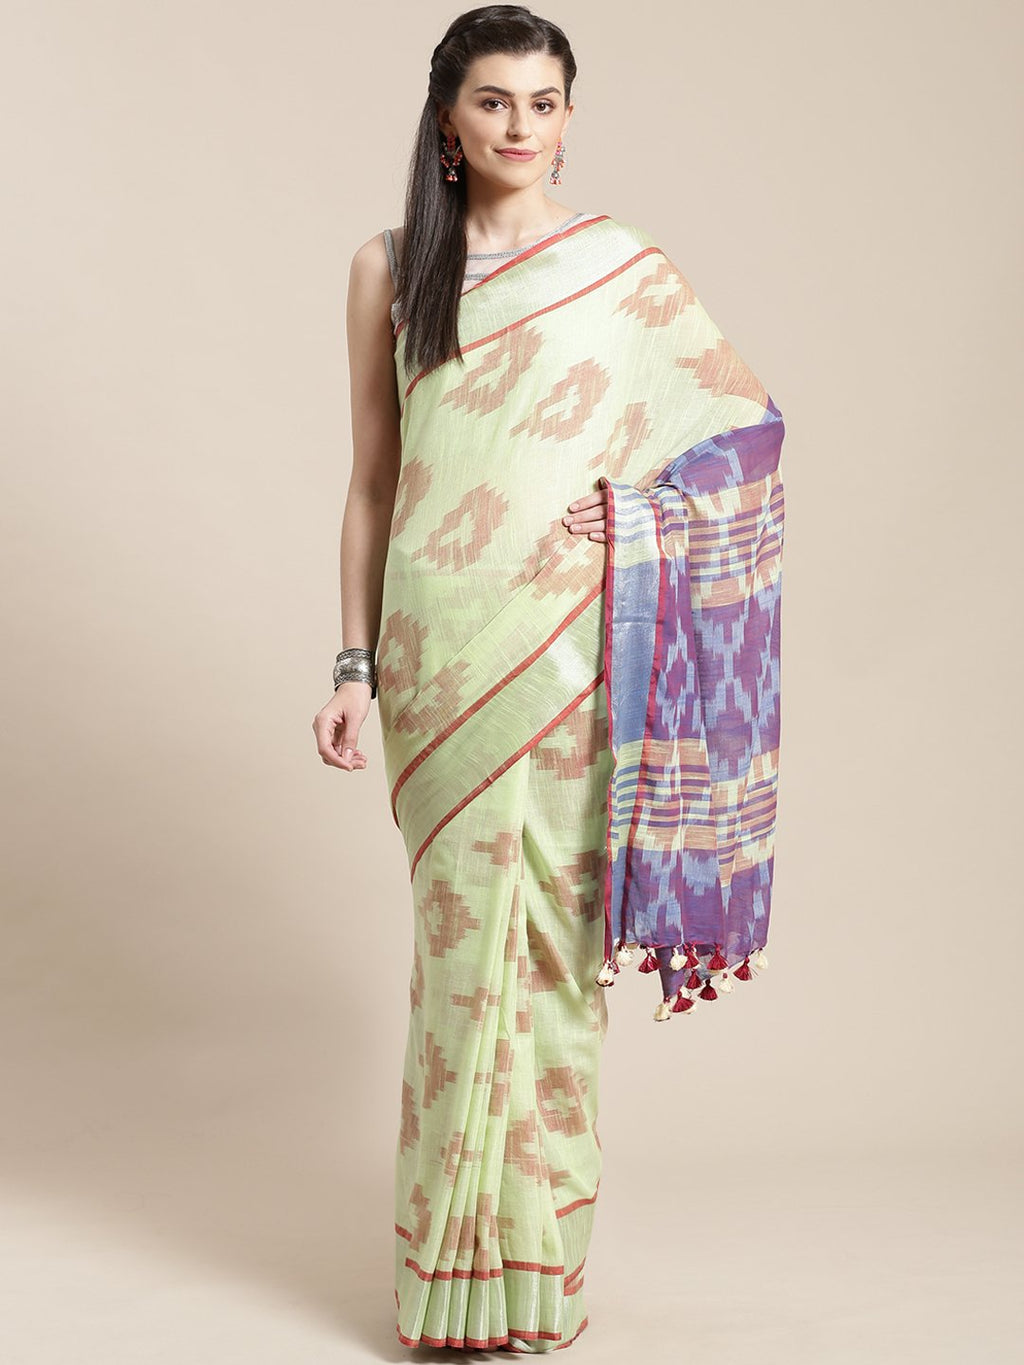 Linen Handwoven Saree and Blouse-Saree-Kalakari India-ALBGSA0038-Hand Woven, Linen, Sarees, Sustainable Fabrics, Traditional Weave-[Linen,Ethnic,wear,Fashionista,Handloom,Handicraft,Indigo,blockprint,block,print,Cotton,Chanderi,Blue, latest,classy,party,bollywood,trendy,summer,style,traditional,formal,elegant,unique,style,hand,block,print, dabu,booti,gift,present,glamorous,affordable,collectible,Sari,Saree,printed, holi, Diwali, birthday, anniversary, sustainable, organic, scarf, online, low pri